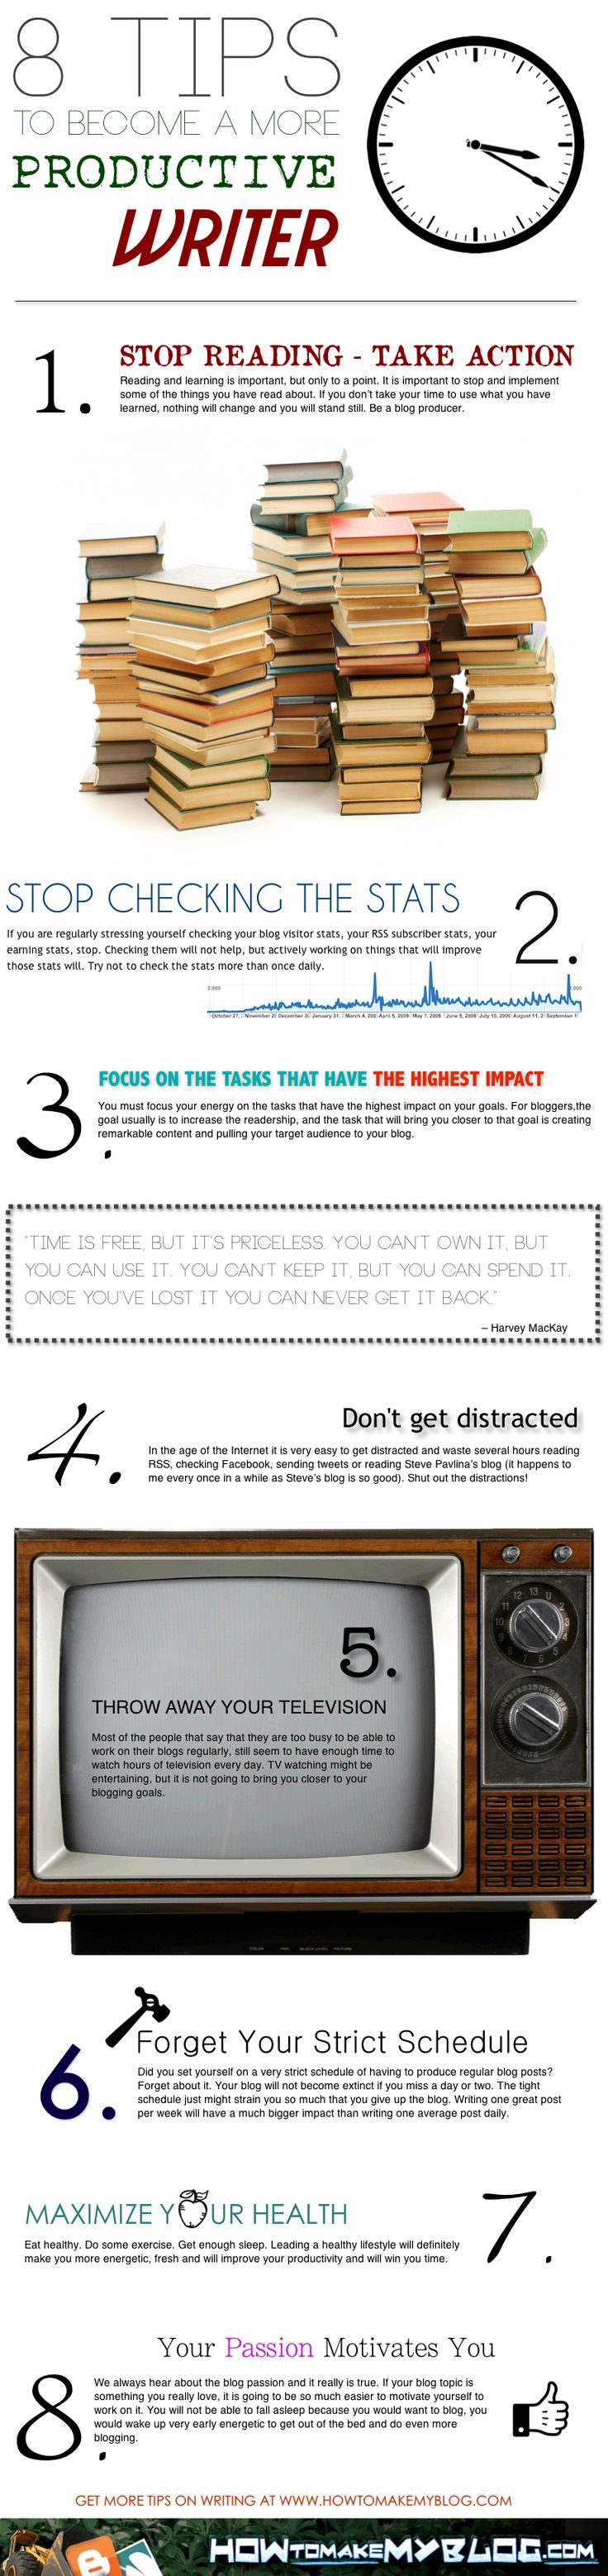 How To Become A More Productive Writer #Infographic